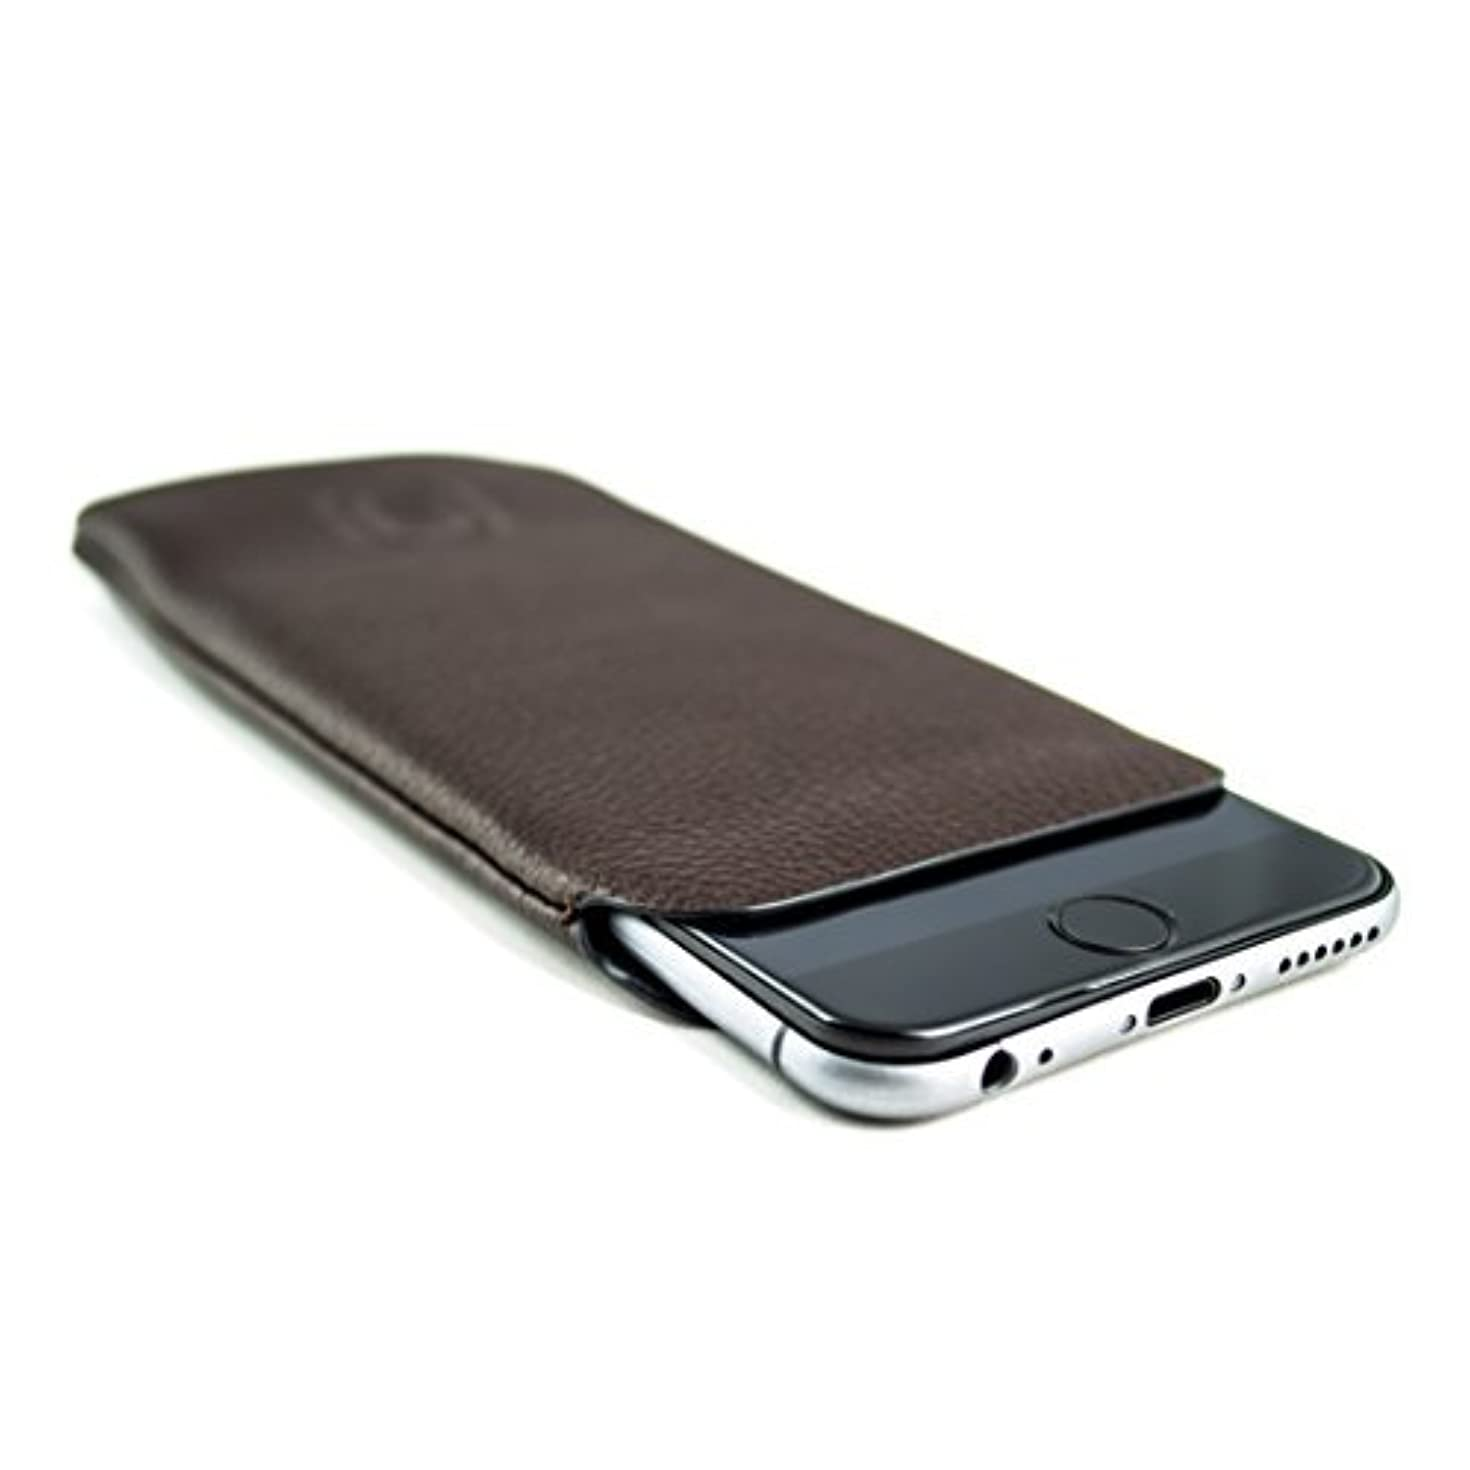 Dockem Synthetic Leather Sleeve for iPhone 8, iPhone 7, iPhone 6 and 6S - Ultra Slim Professional Executive Faux Leather Pouch Case (Dark Brown)